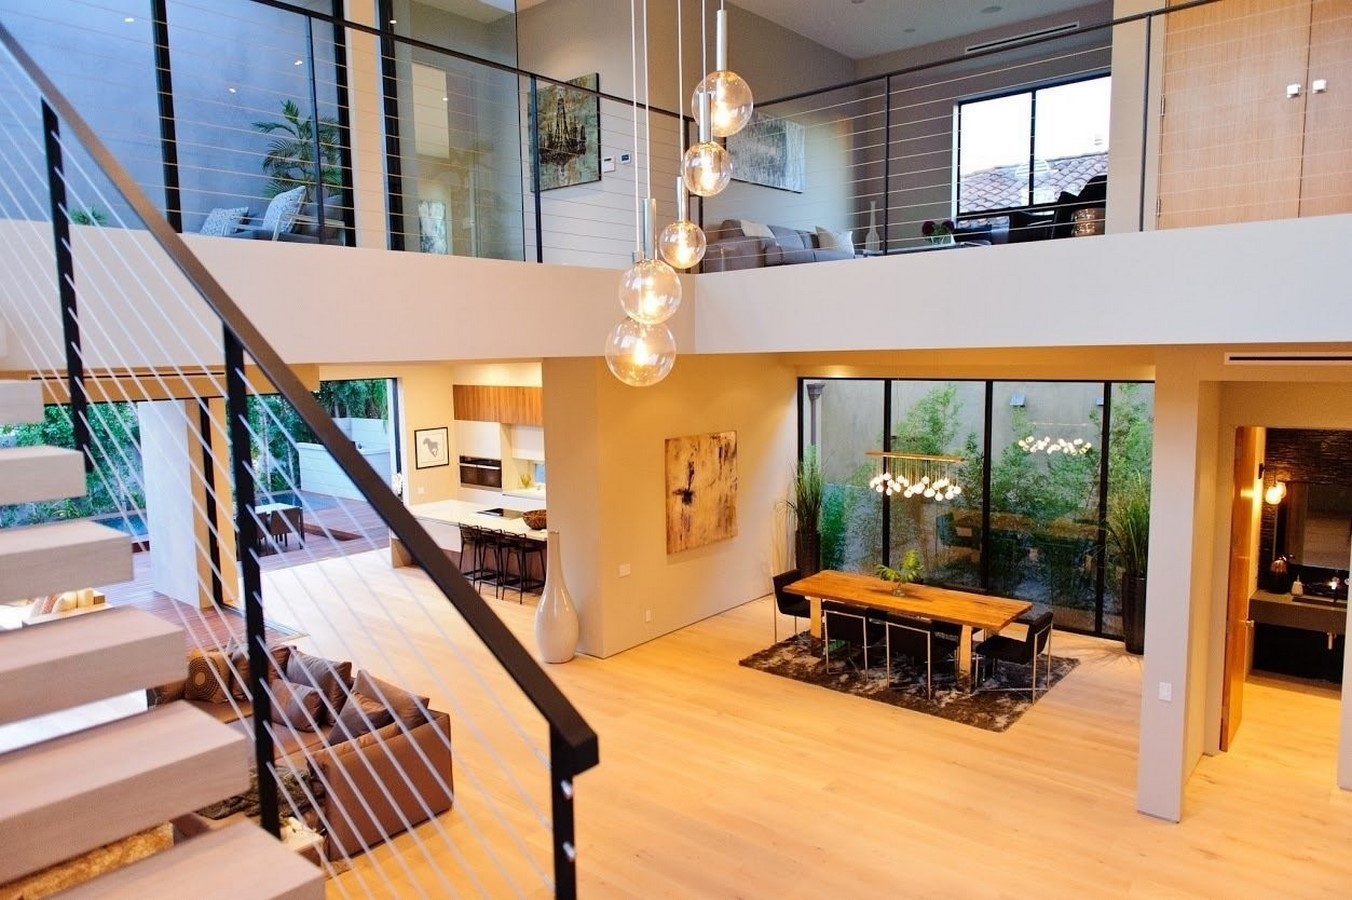 20 Examples of home with beautiful central atriums - Sheet10